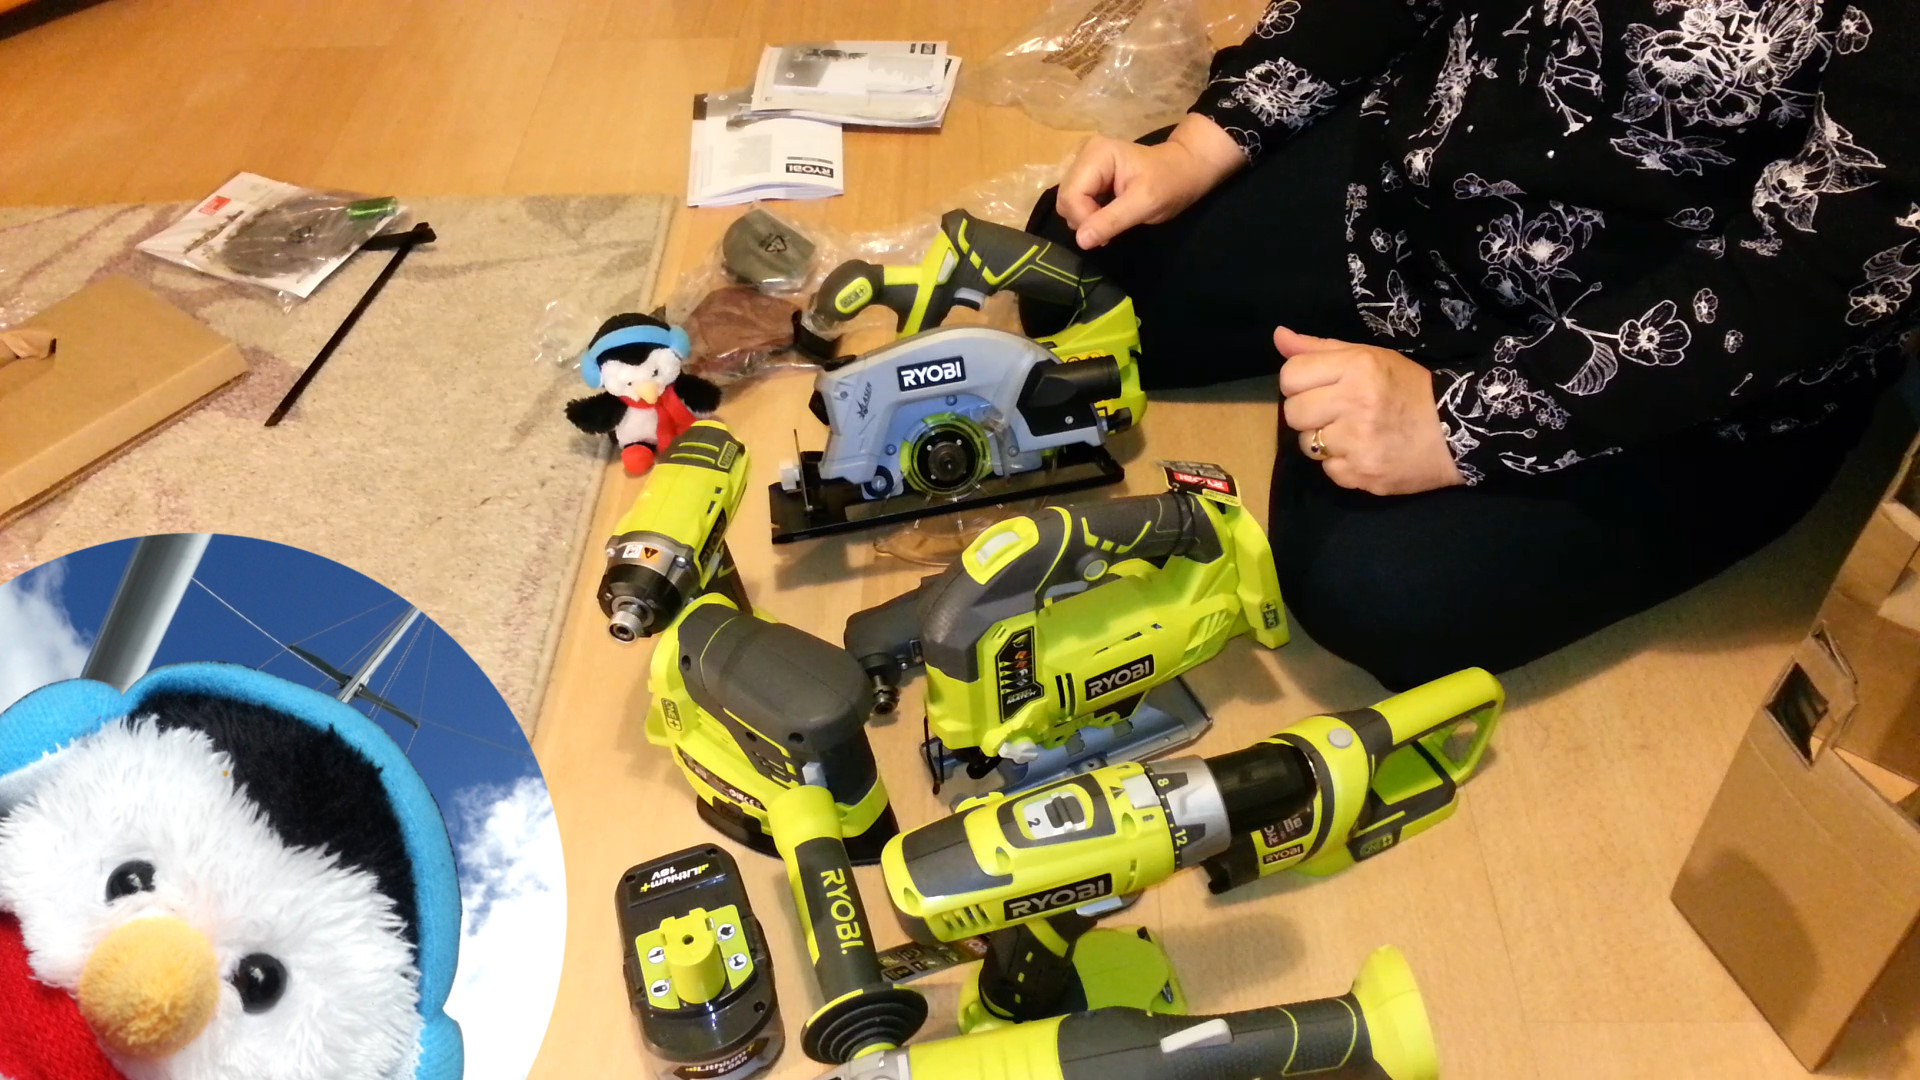 Watch our 'Power tools are a girls best friend' video and add comments etc.